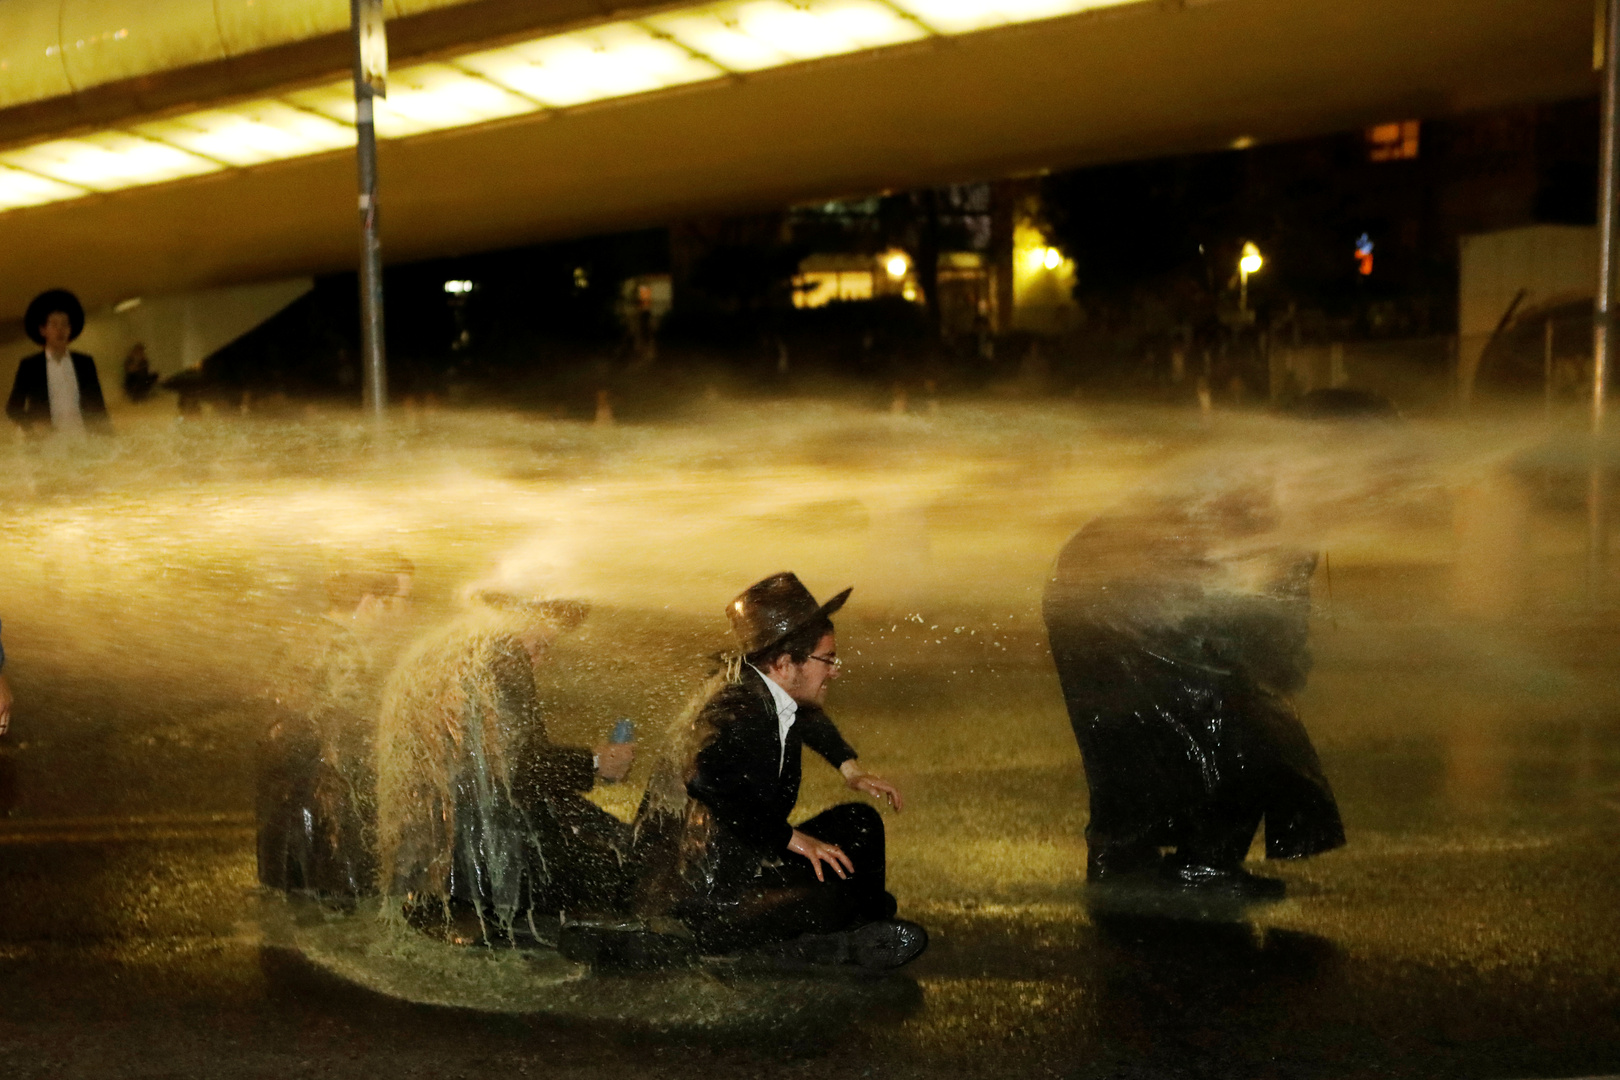 Israel .. Violent clashes between police and religious extremist anti-closure Jews in Bnei Brak